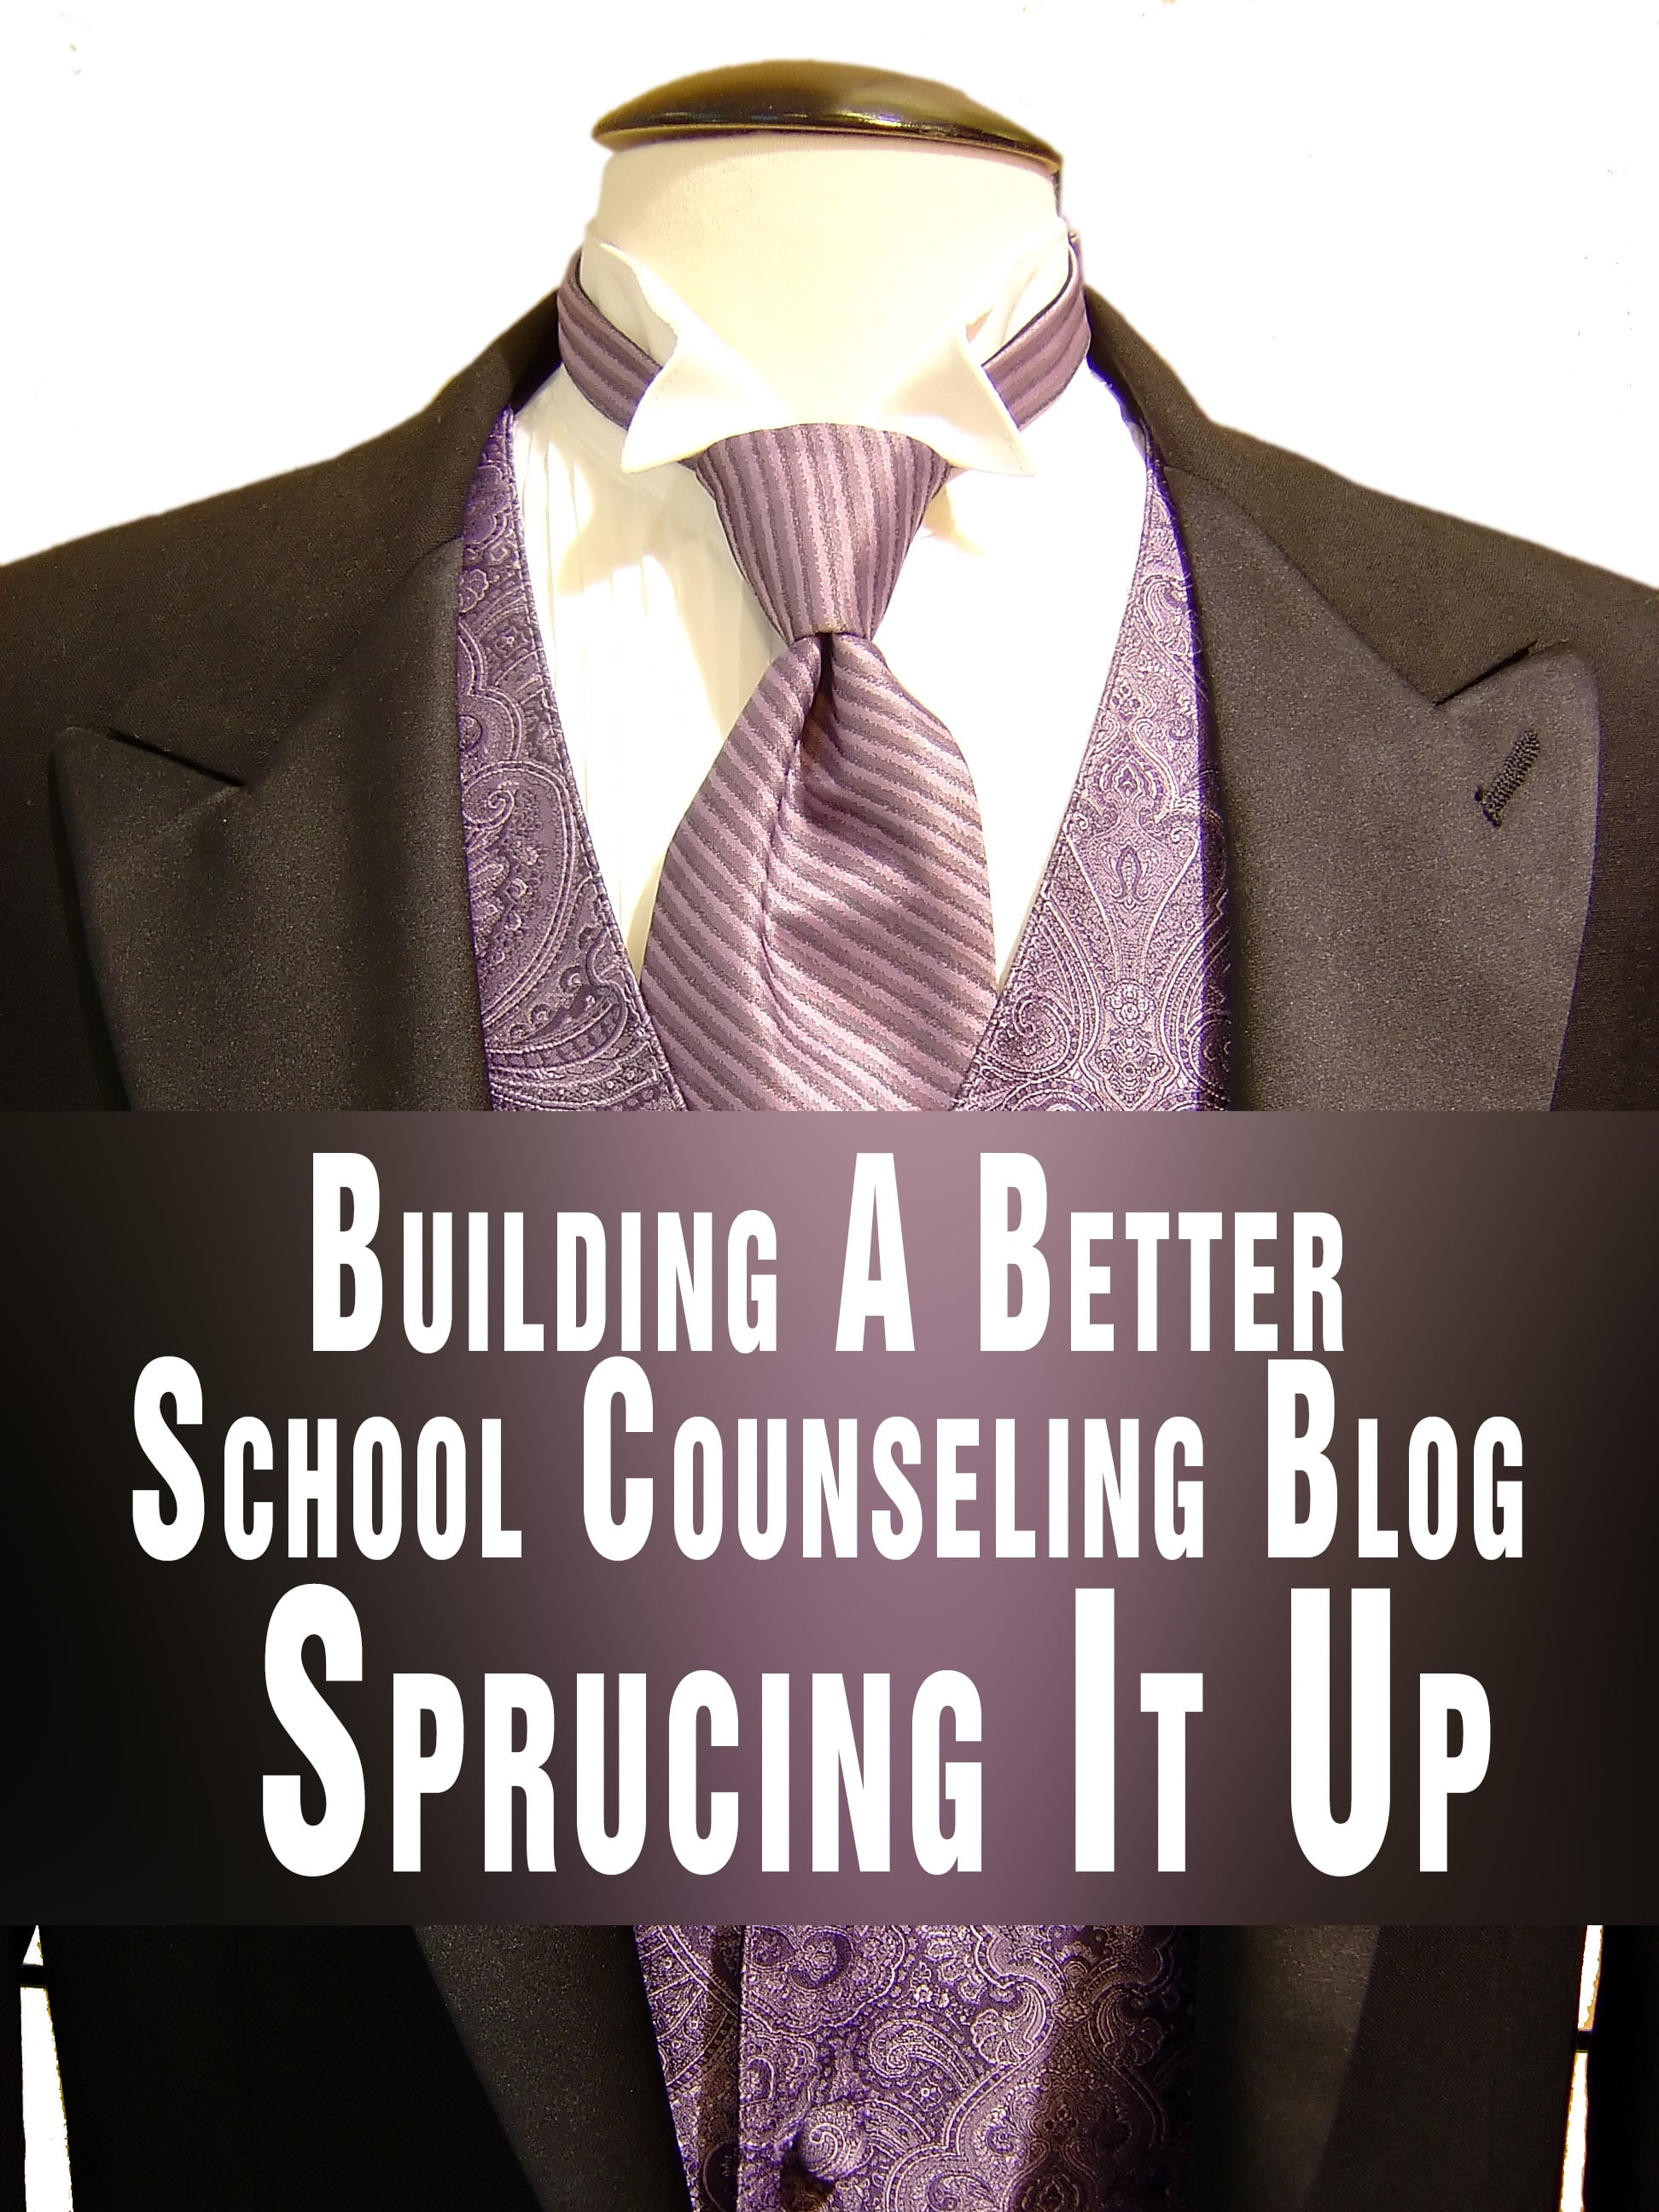 Building A Better School Counseling Blog Series: Sprucing It Up